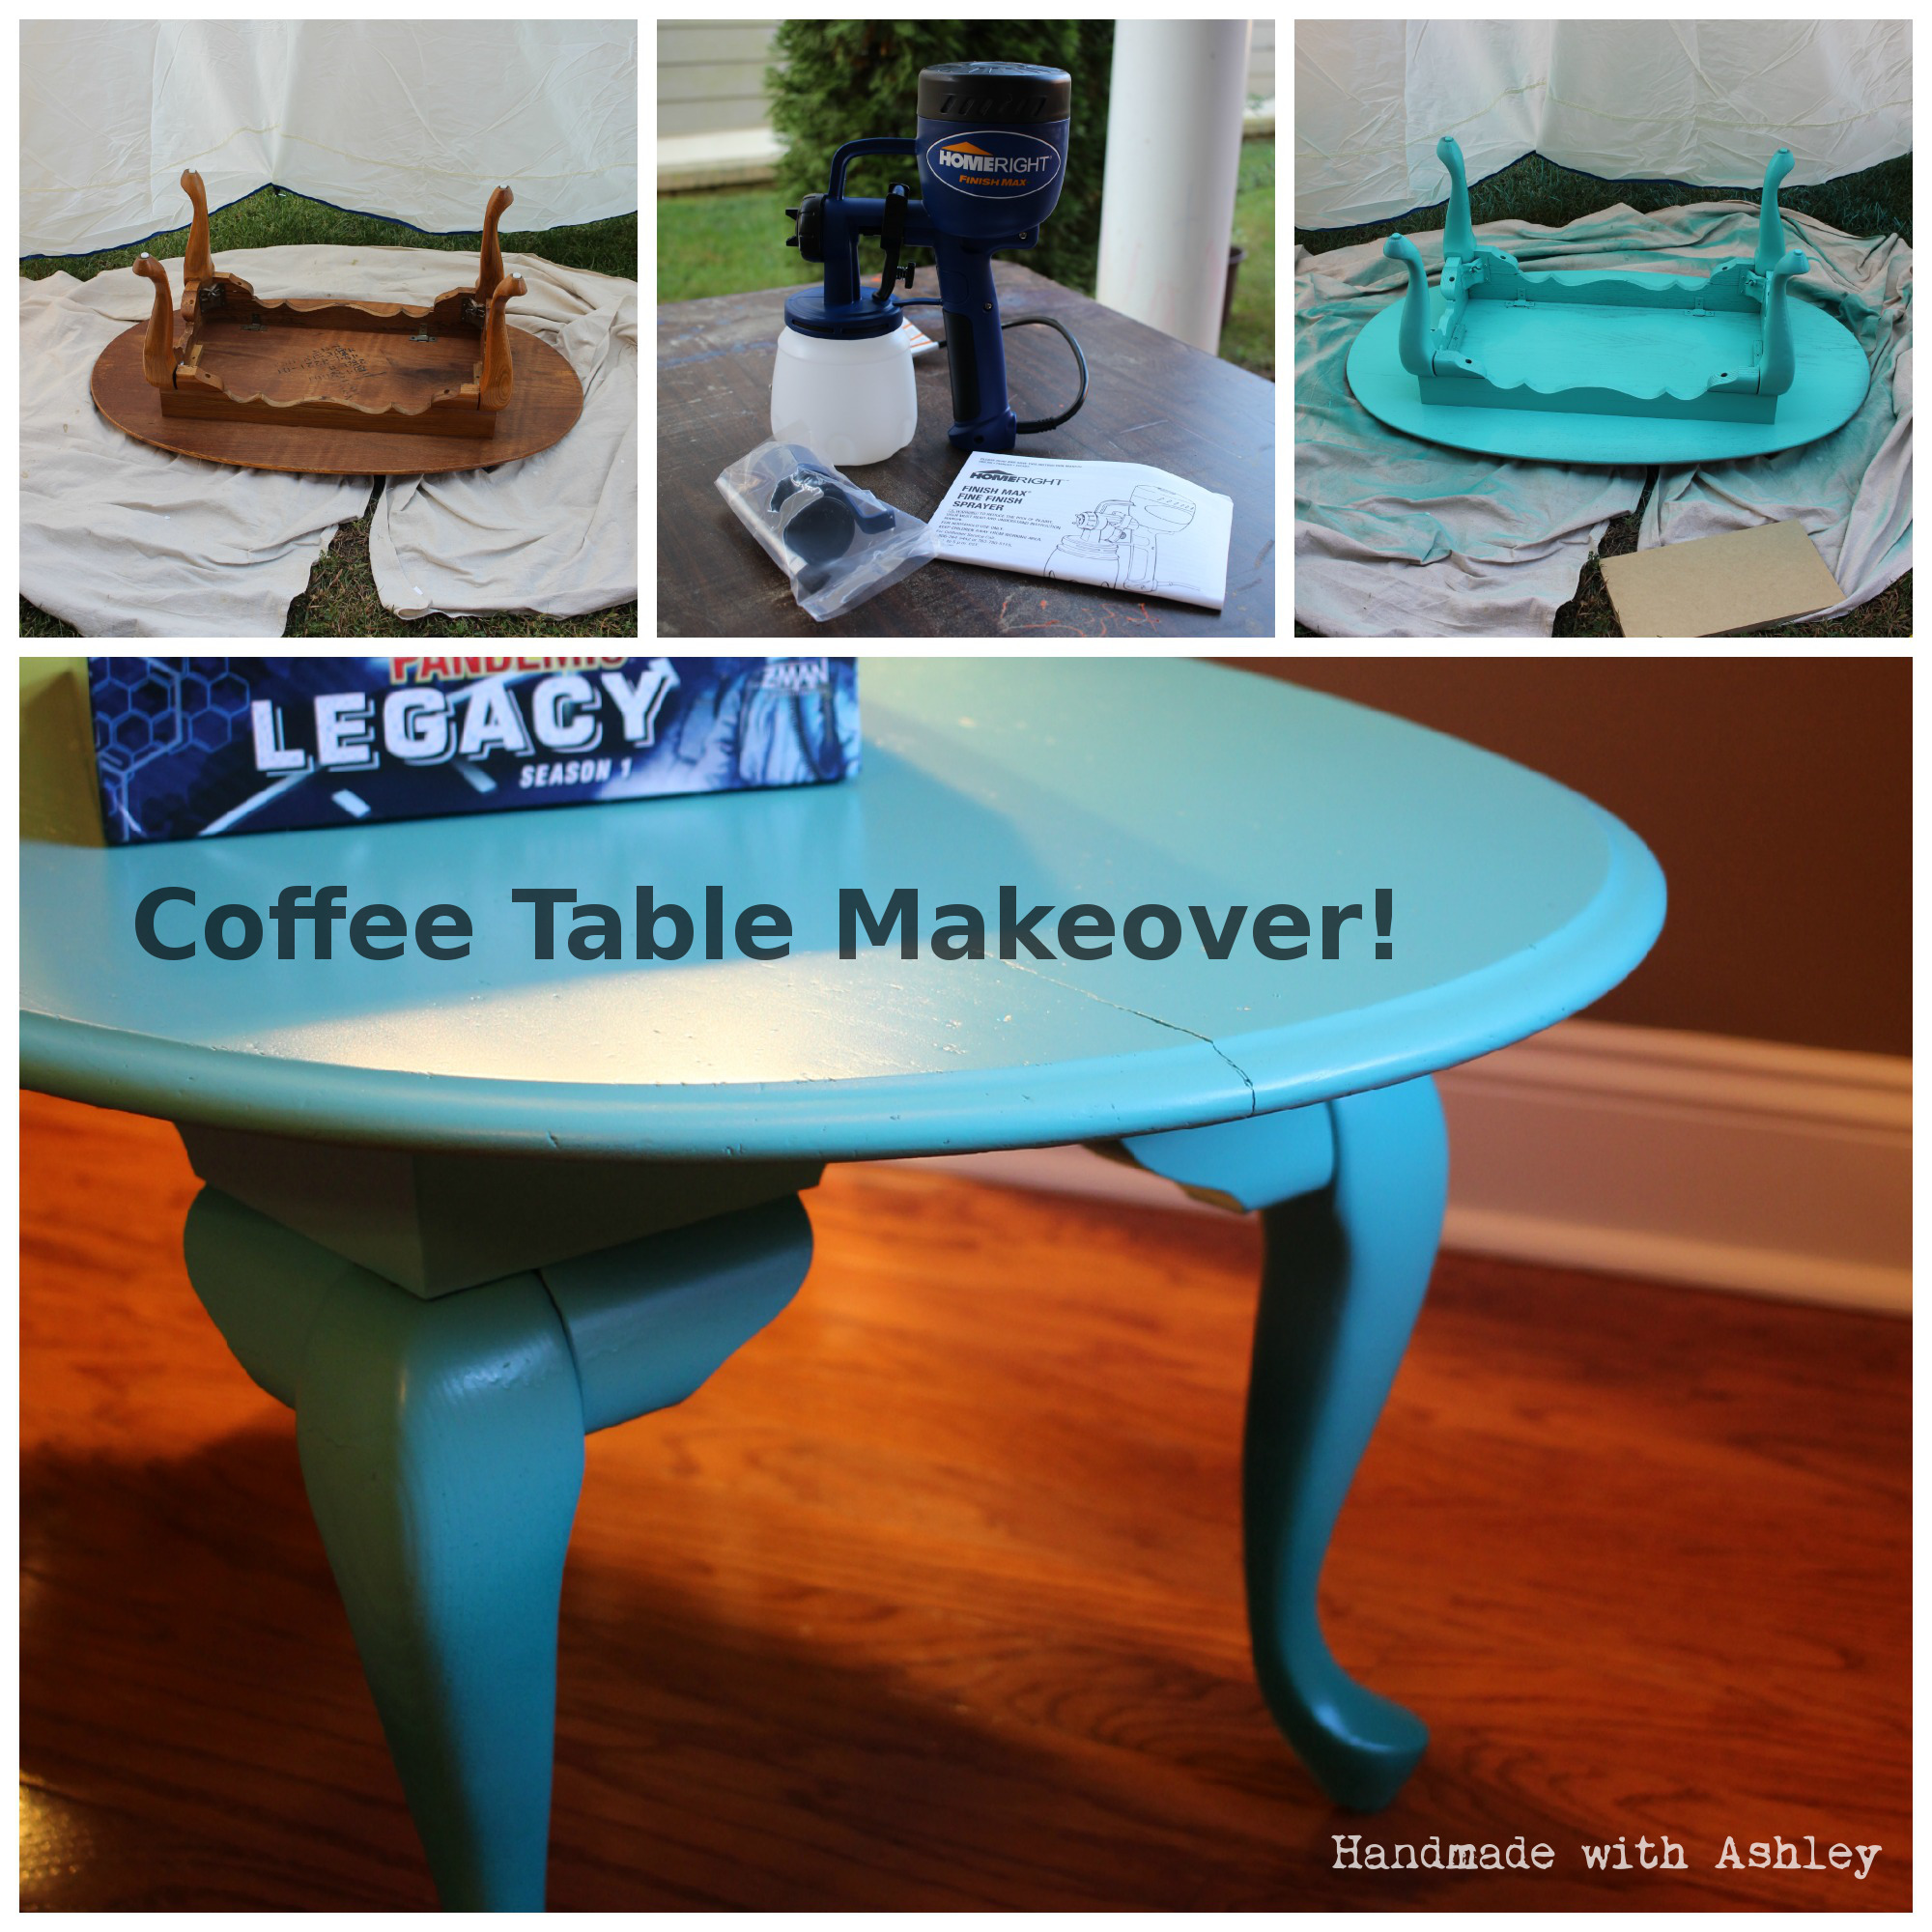 Coffee Table Makeover!